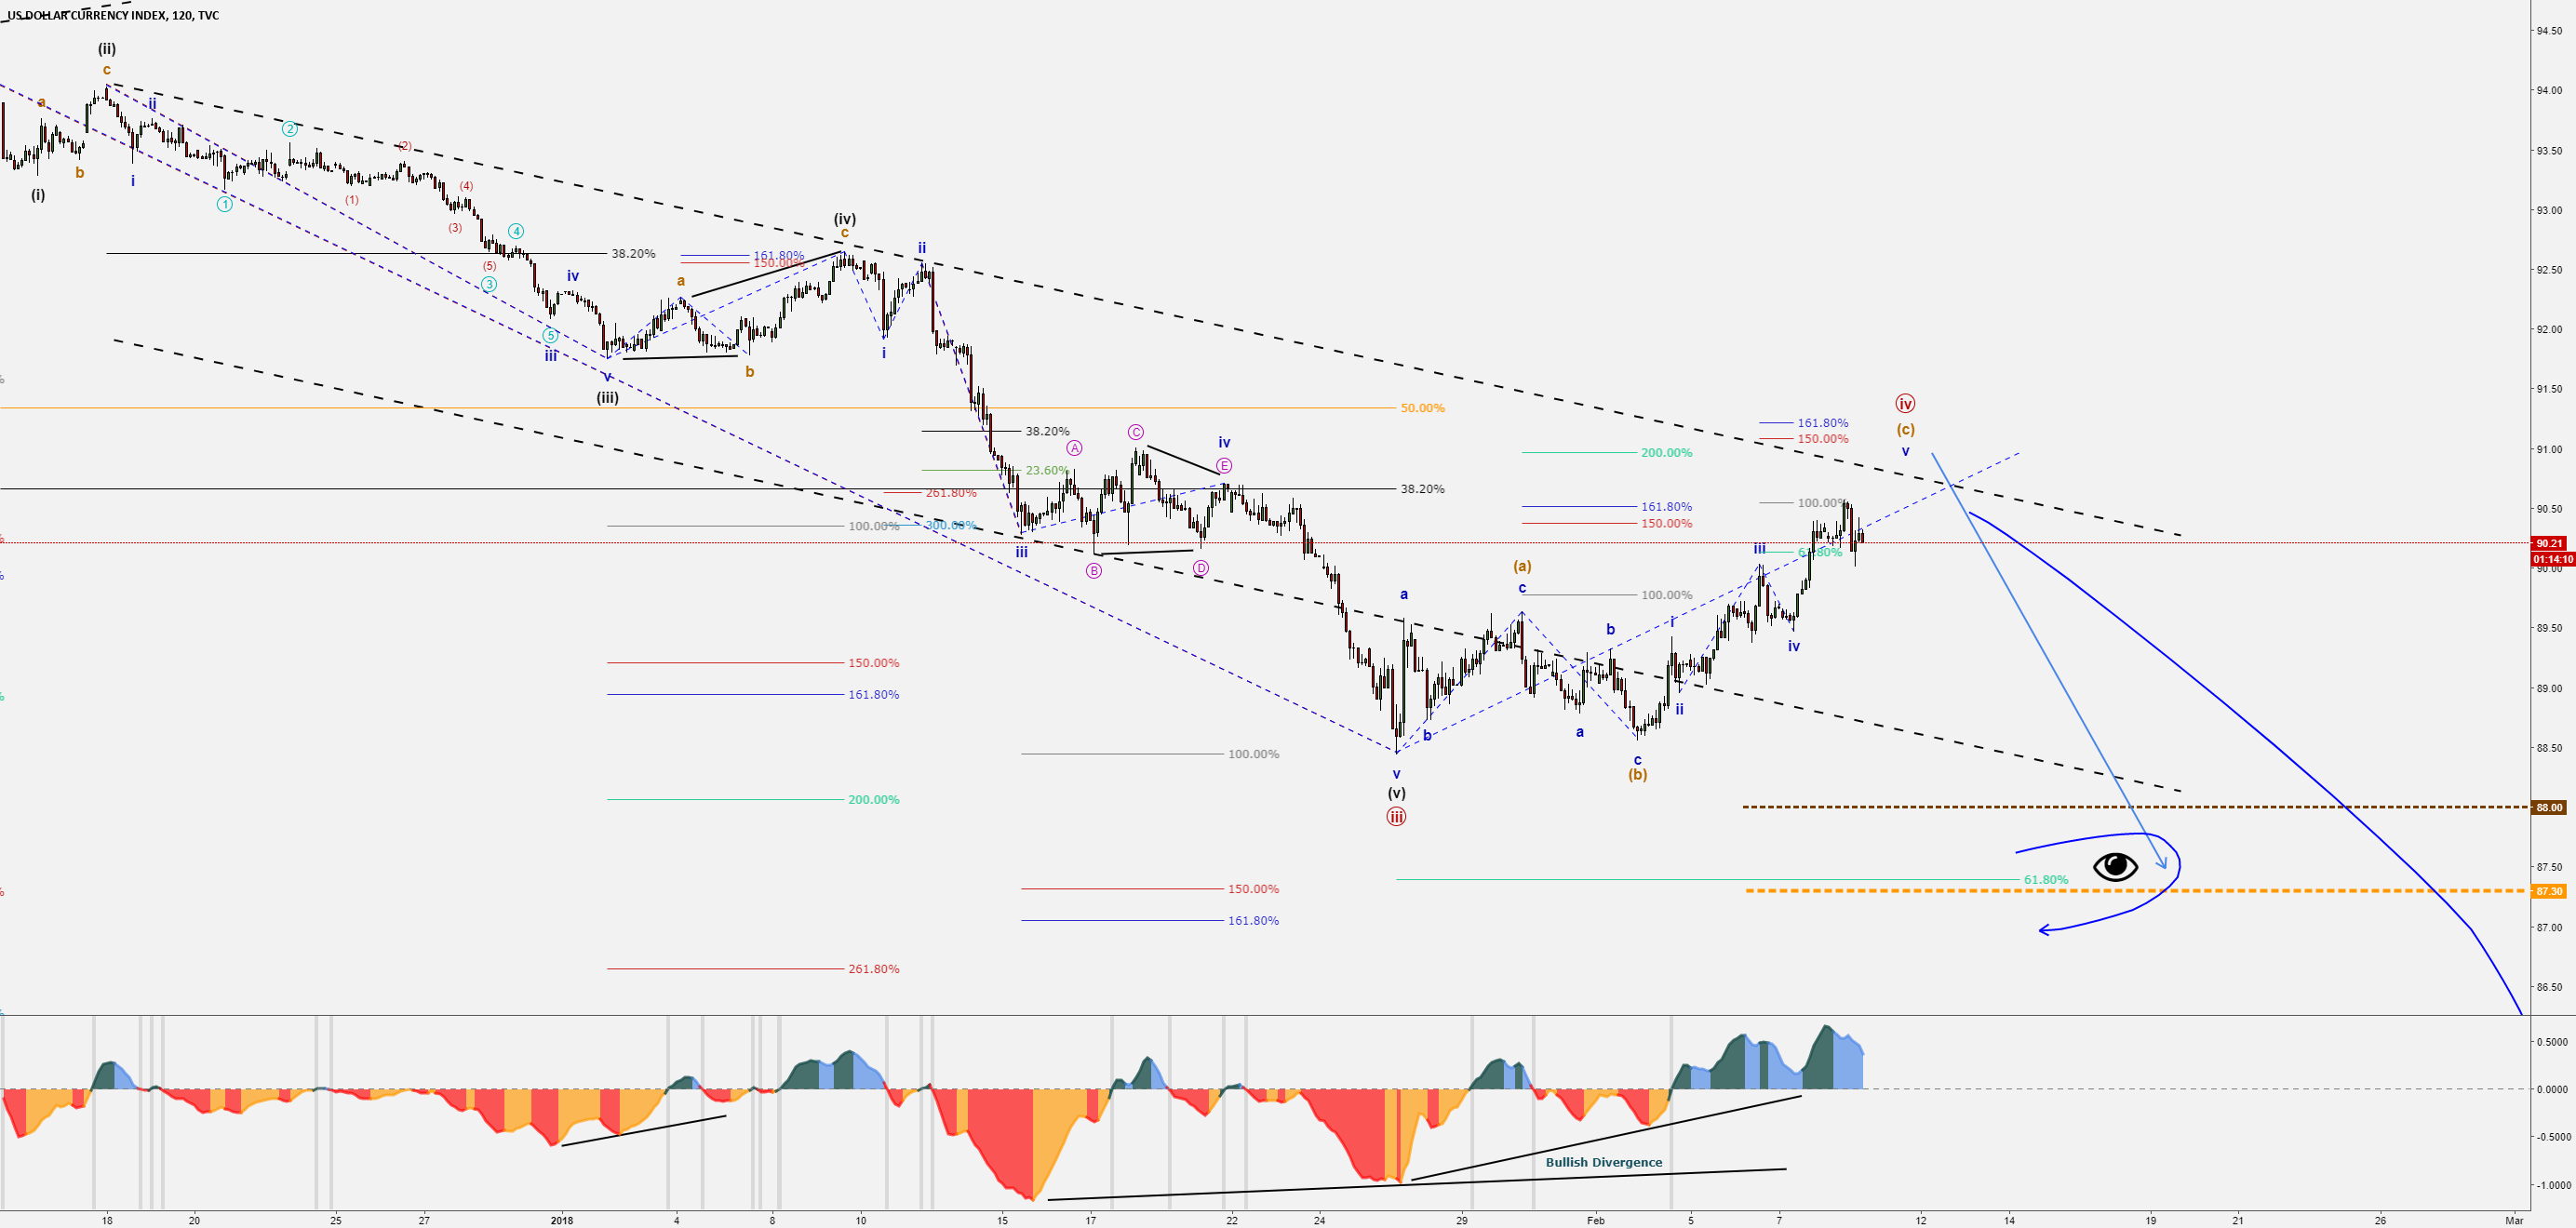 DXY Video - Bearish Minute 5 - End of Down-Trend